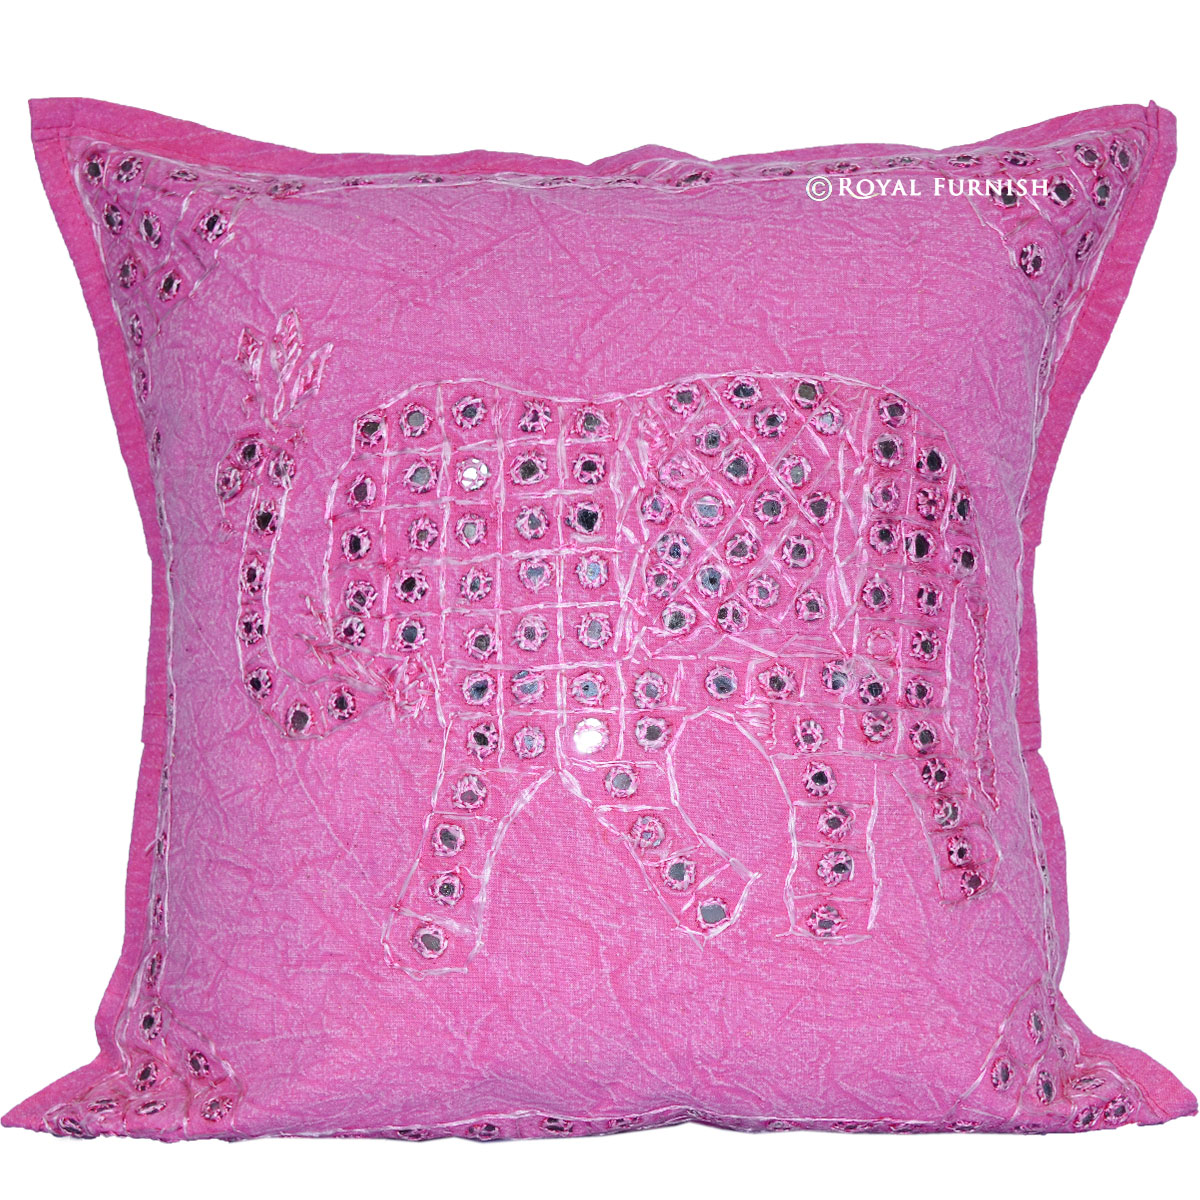 Pink Elephant Throw Pillow : Pink Elephant Design Mirror Embroidery Work Decorative Throw Pillow - RoyalFurnish.com